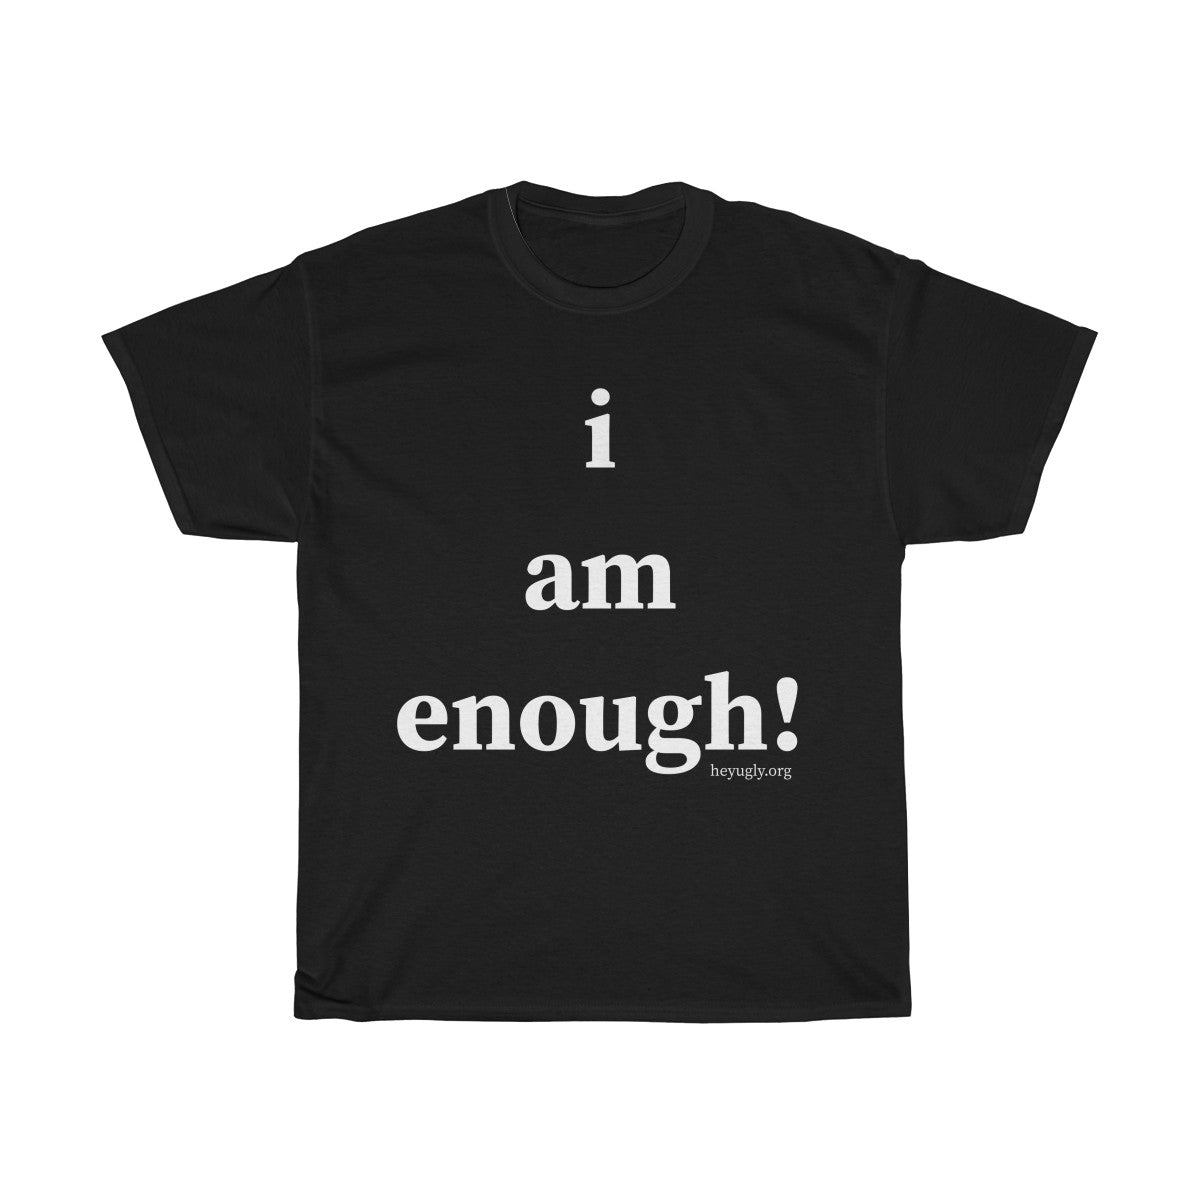 Unisex Heavy Cotton Tee - i am enough!